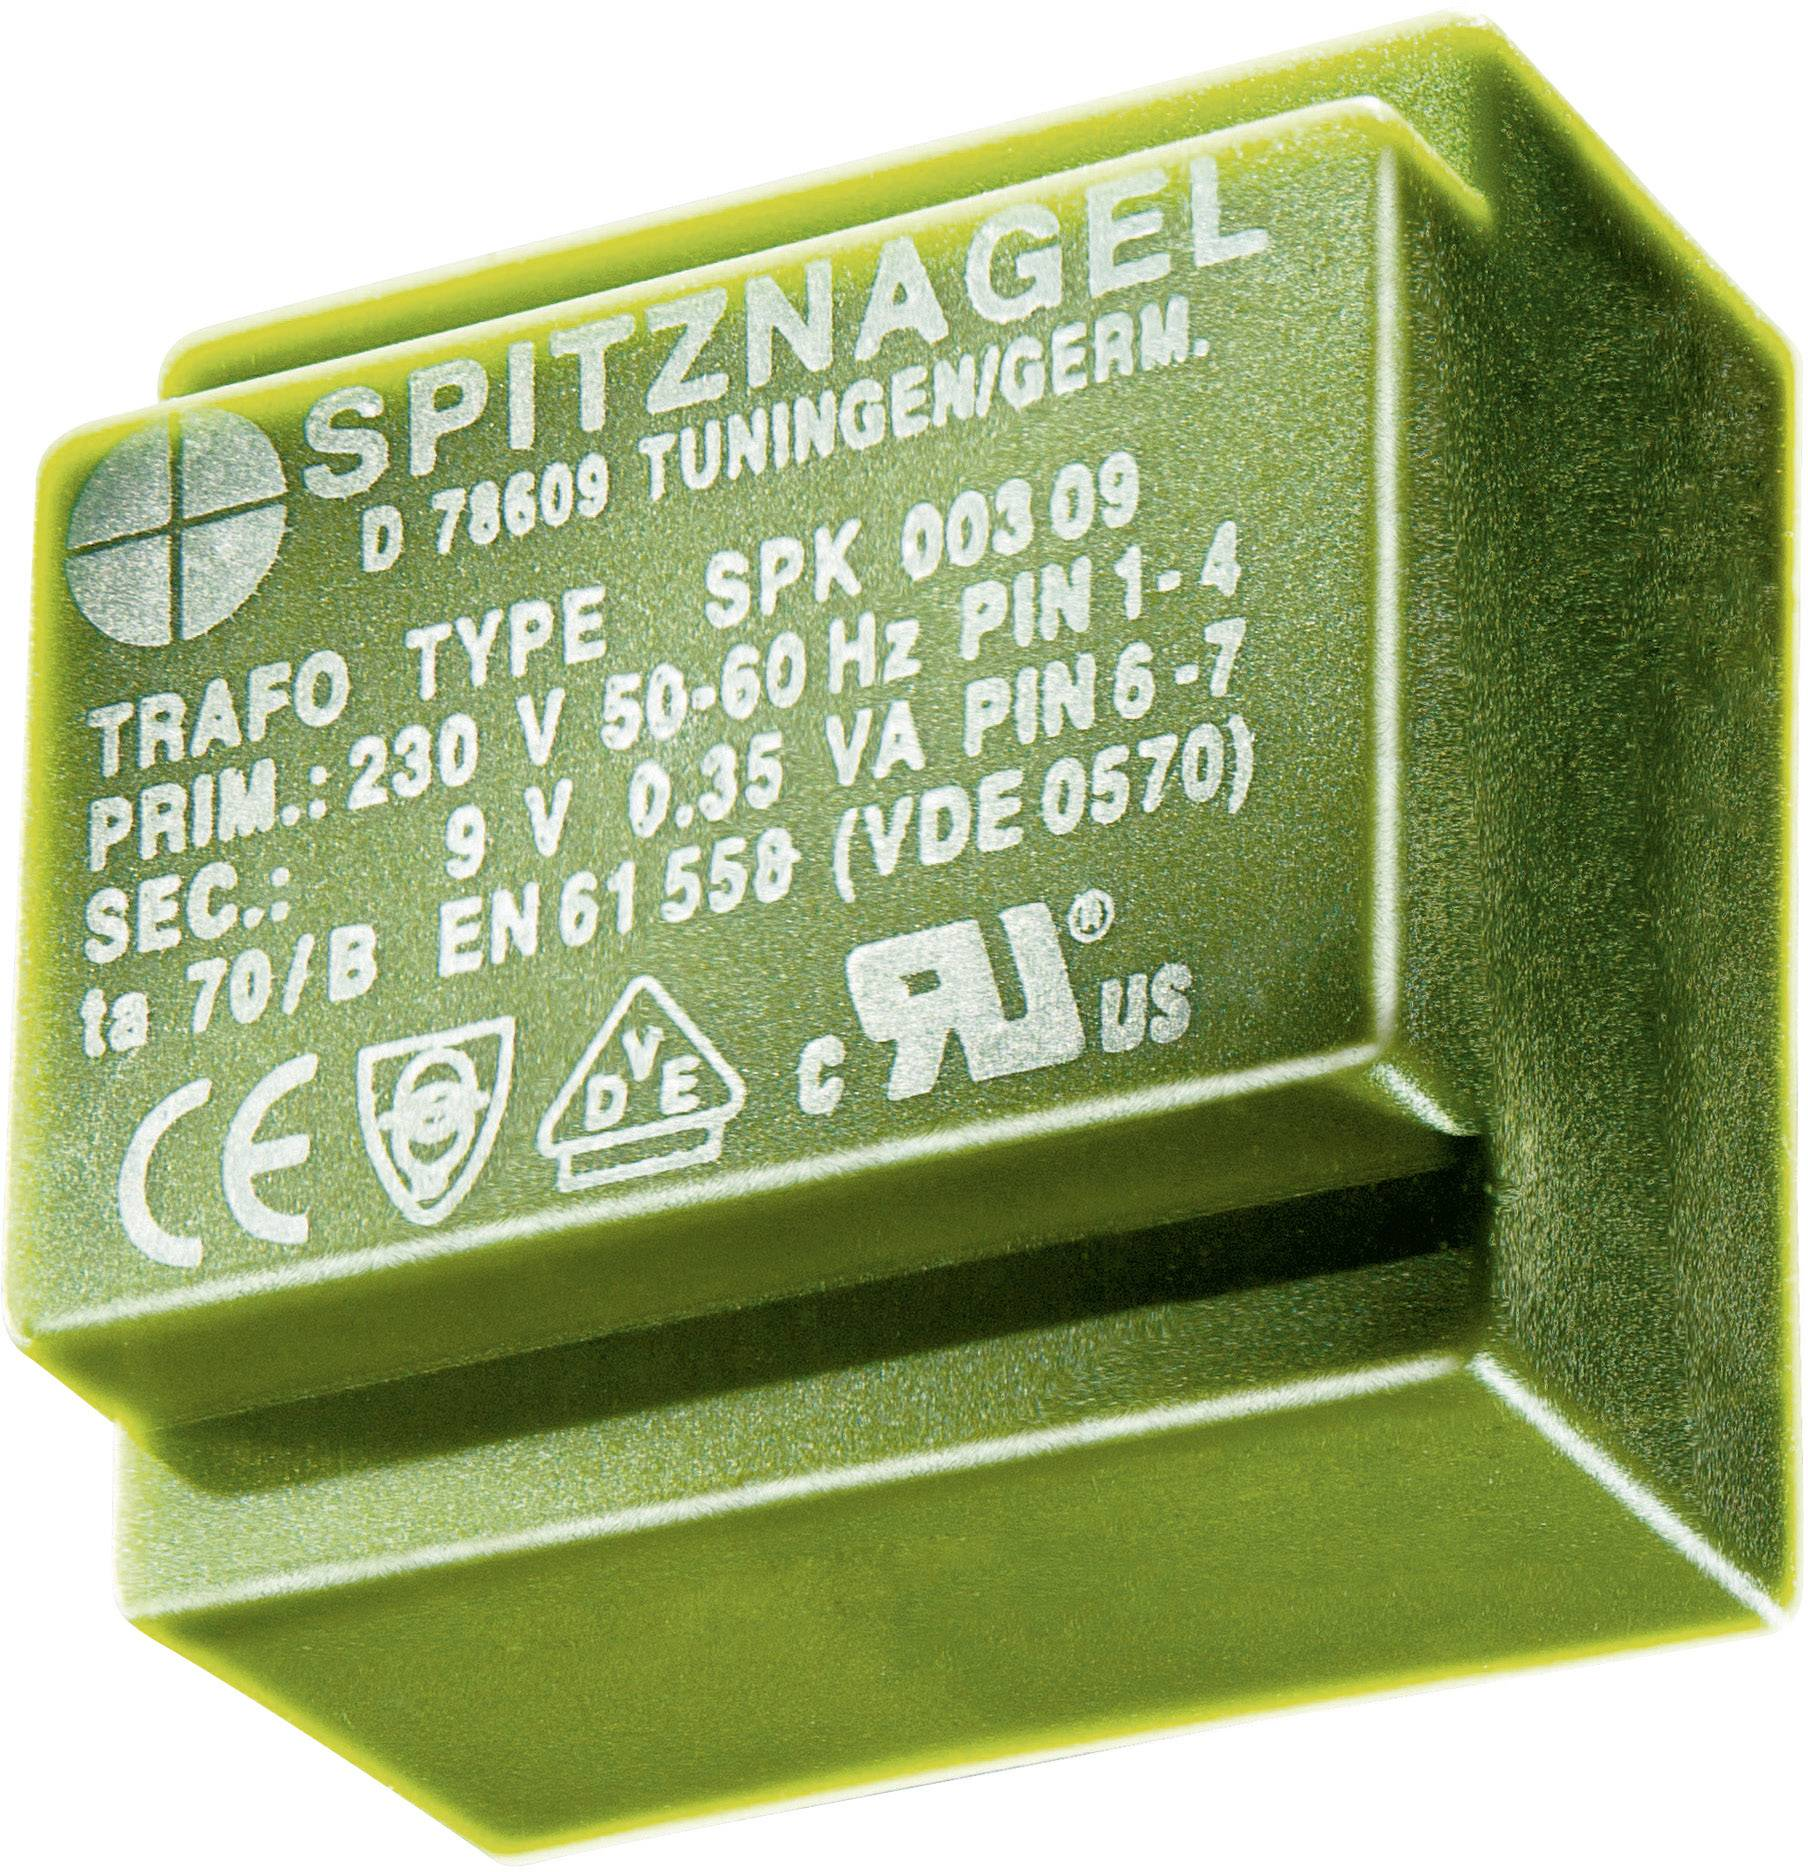 Transformátor do DPS Spitznagel El 30/10,5, 230 V / 12 V, 125 mA, 1,5 VA